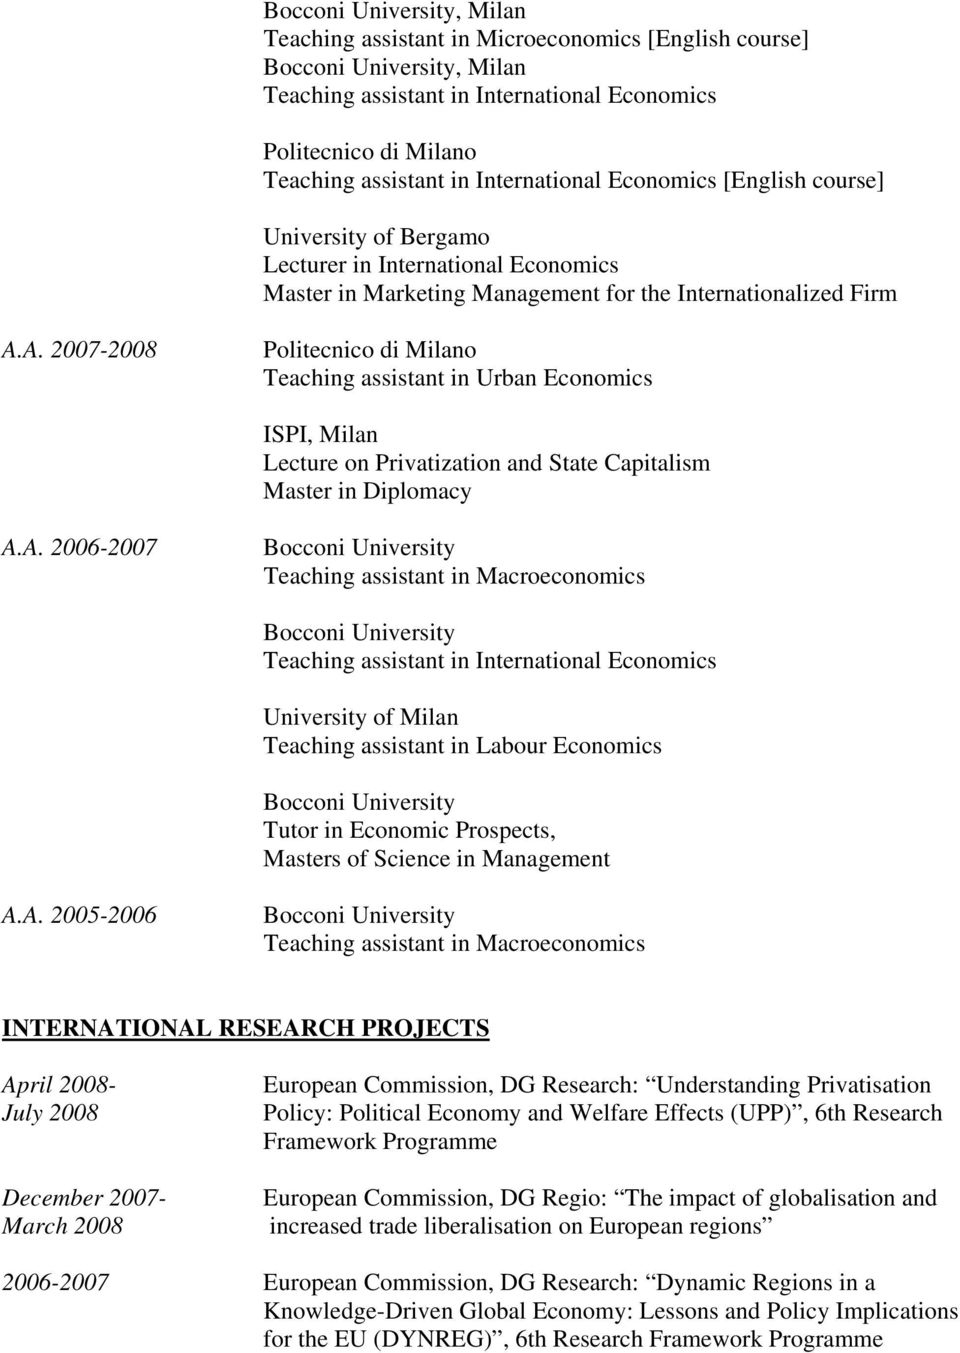 A. 2007-2008 Politecnico di Milano Teaching assistant in Urban Economics ISPI, Milan Lecture on Privatization and State Capitalism Master in Diplomacy A.A. 2006-2007 Teaching assistant in International Economics University of Milan Teaching assistant in Labour Economics Tutor in Economic Prospects, Masters of Science in Management A.